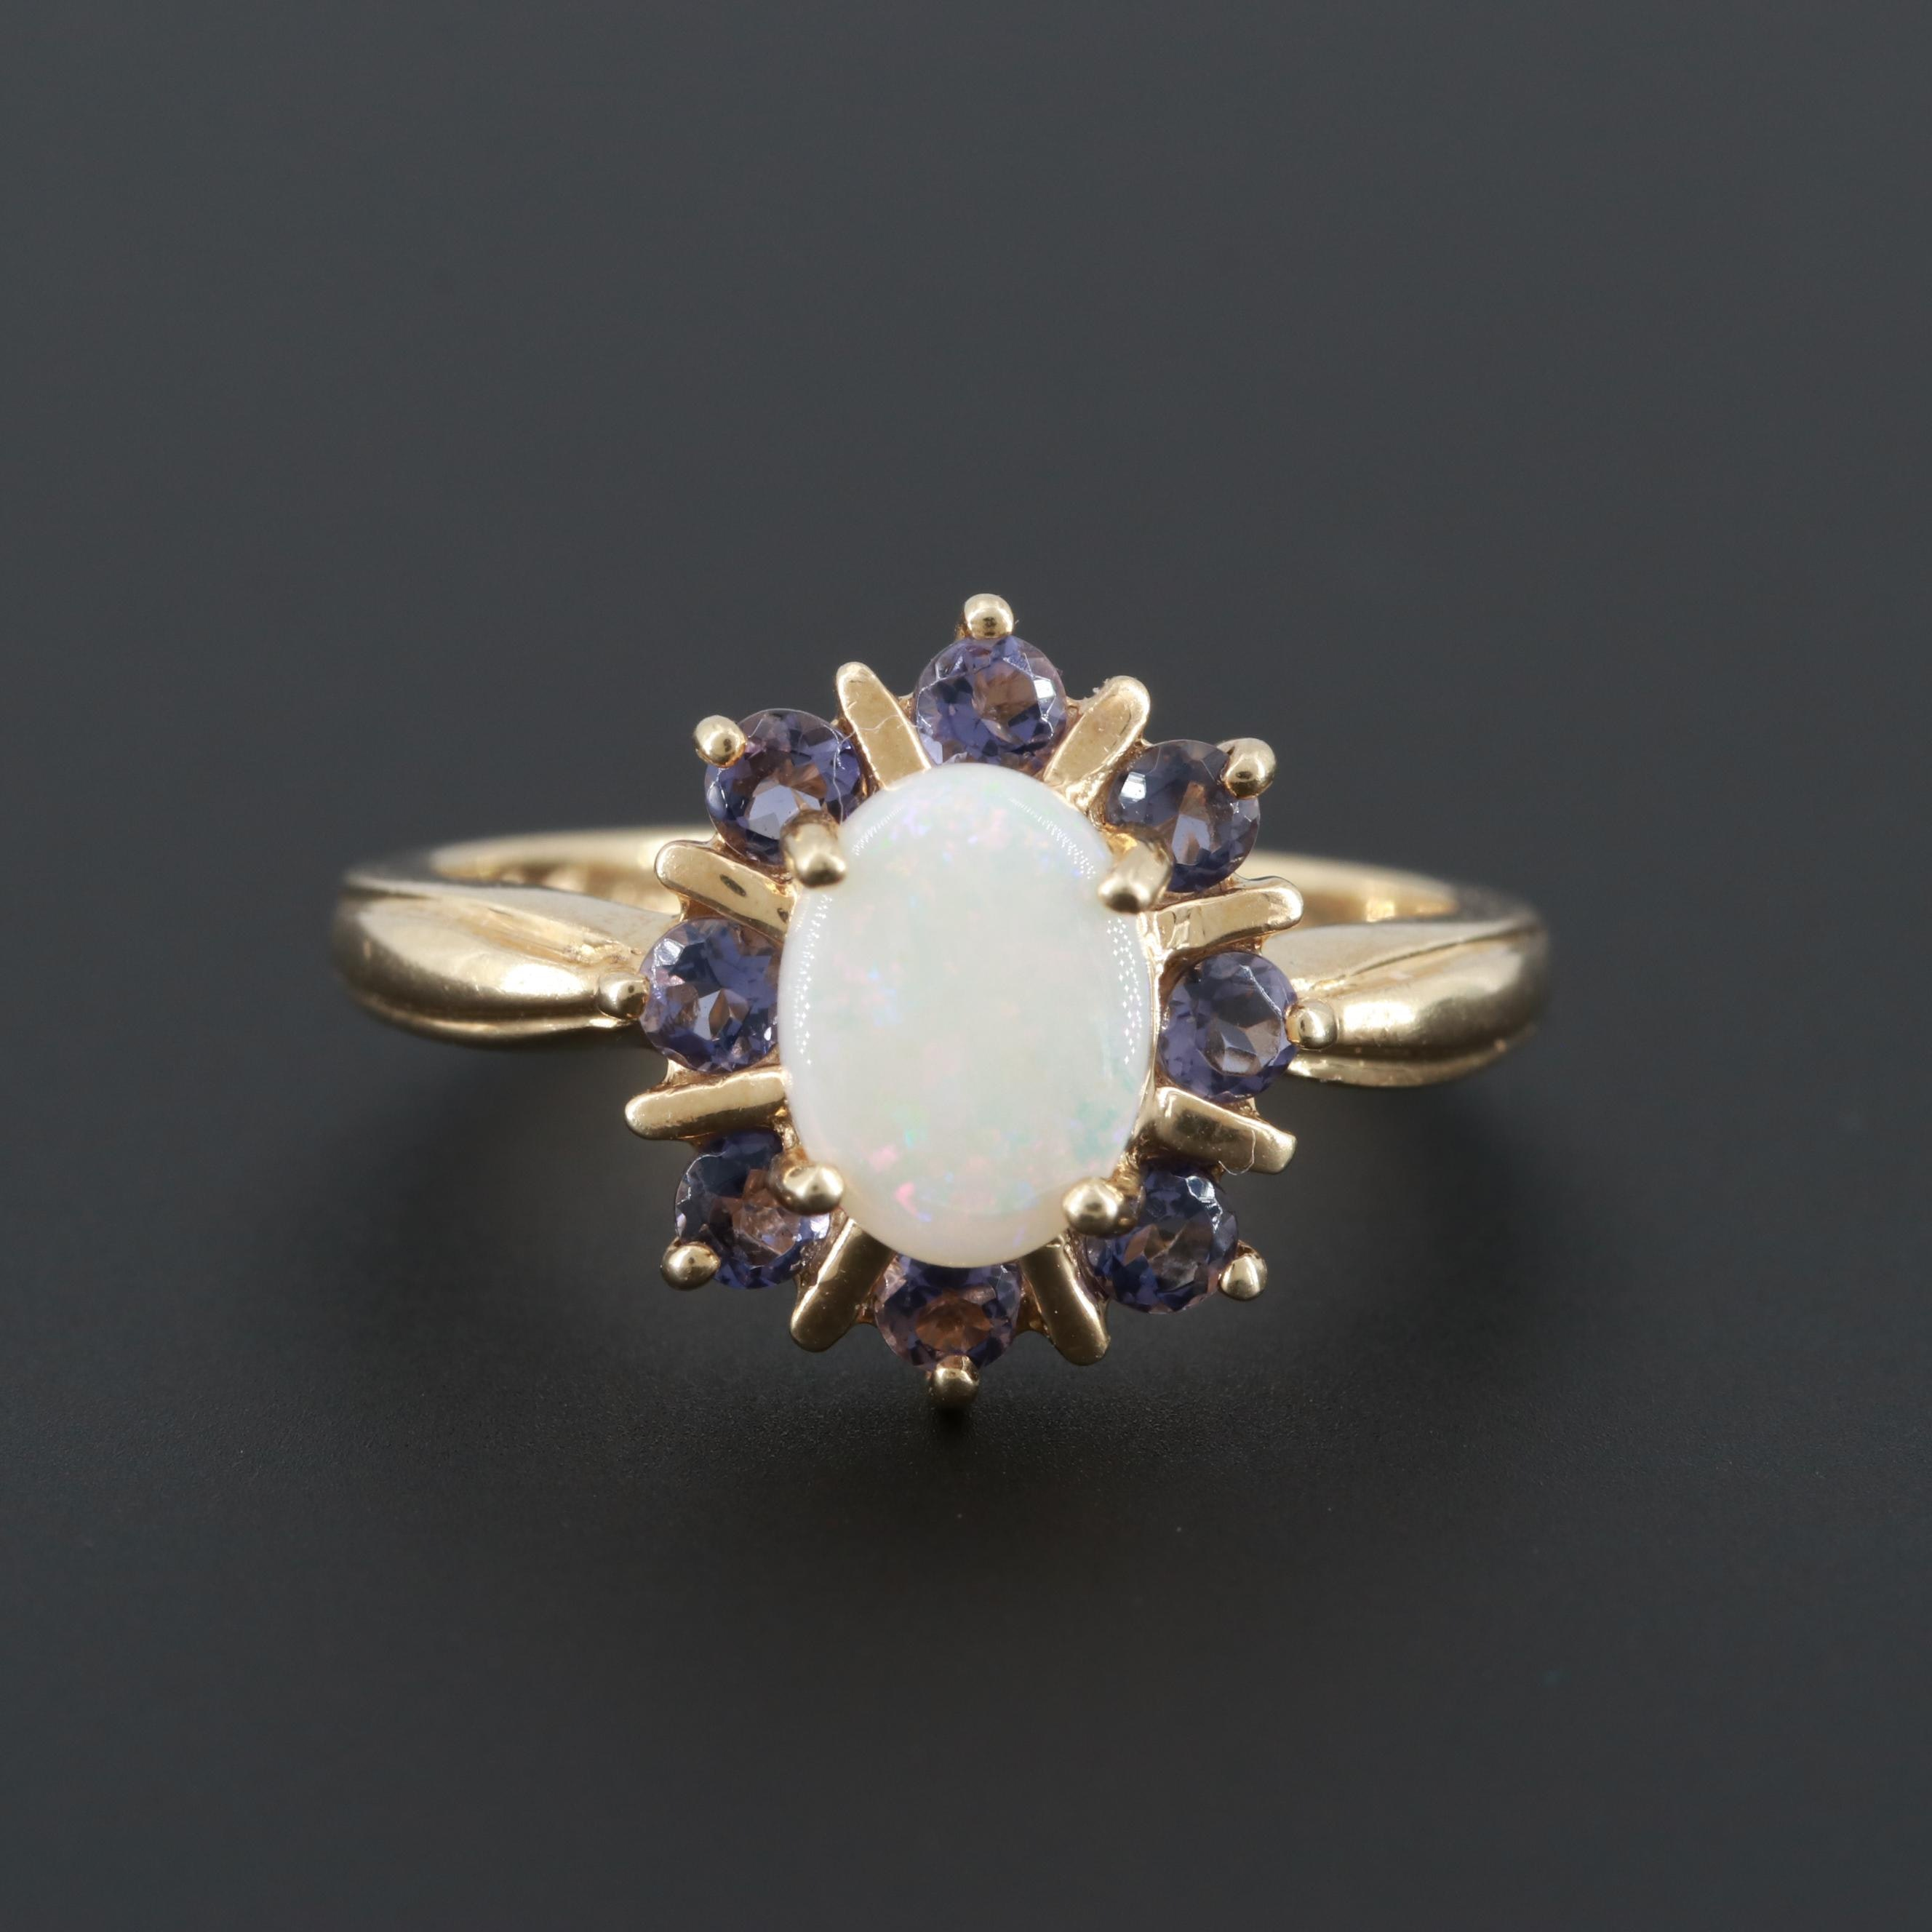 10K Yellow Gold Opal and Iolite Ring